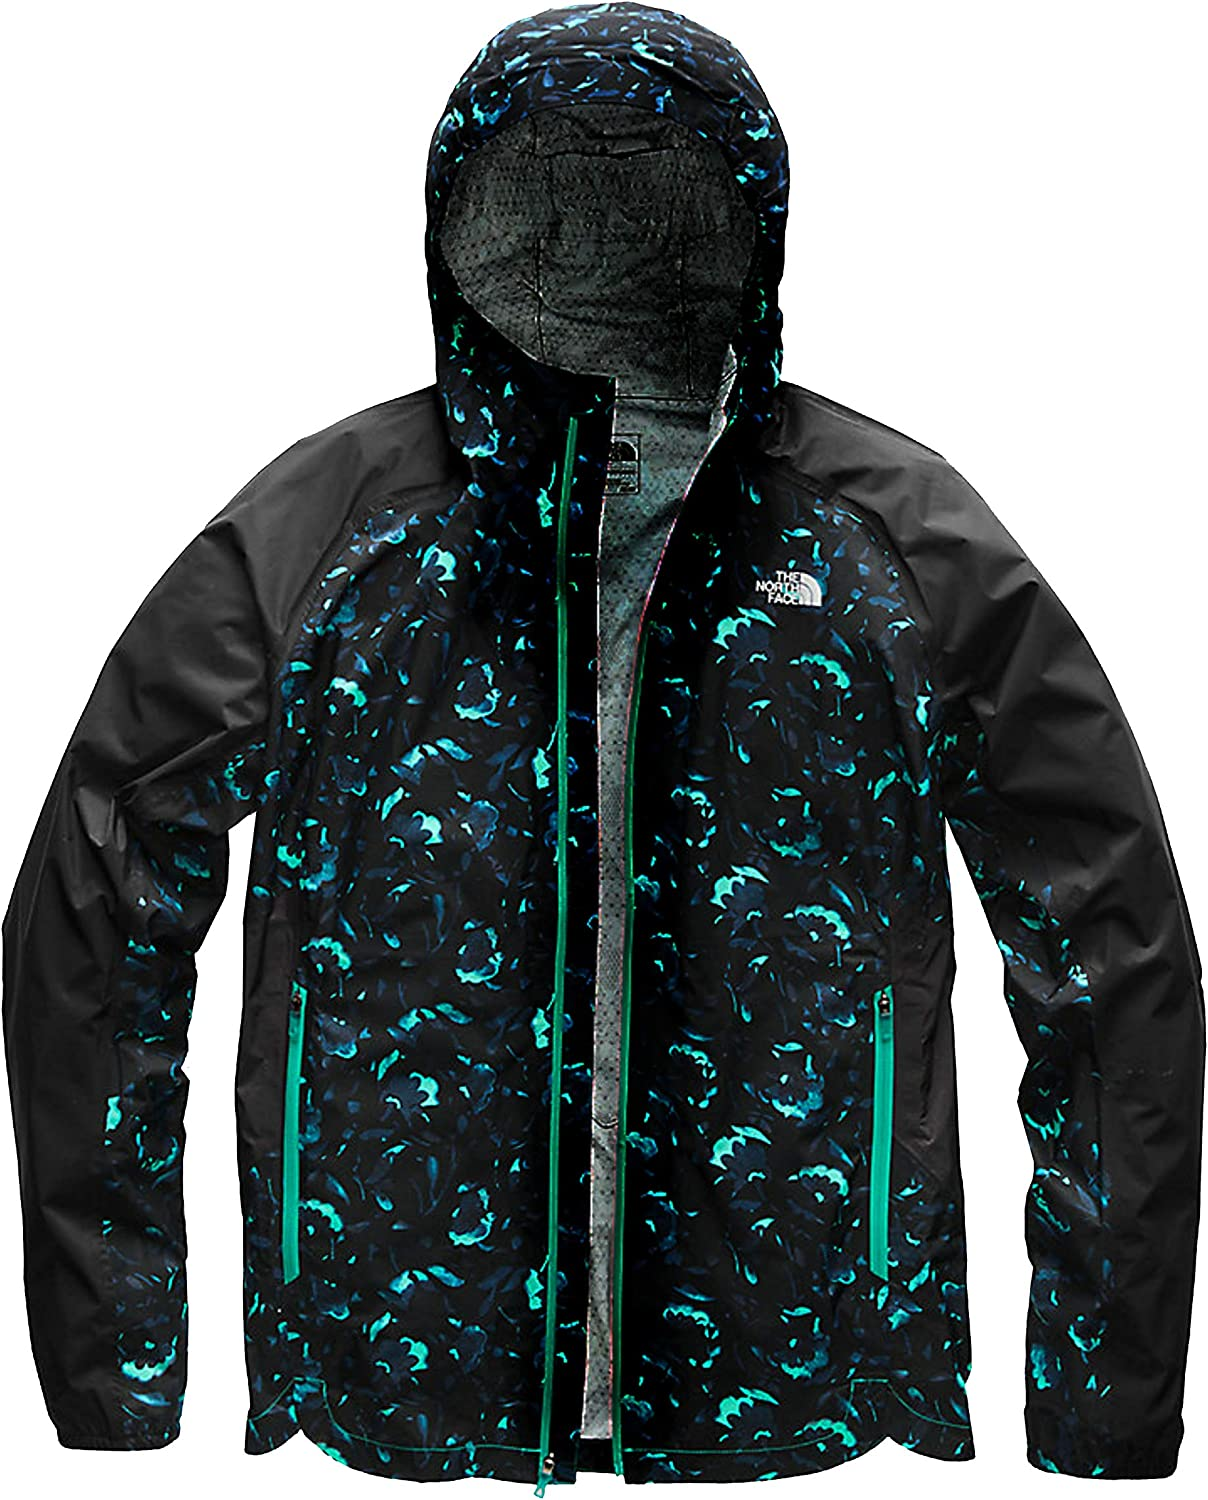 The North Face Women's Stormy Trail Windbreaker Water Resistant Running Jacket